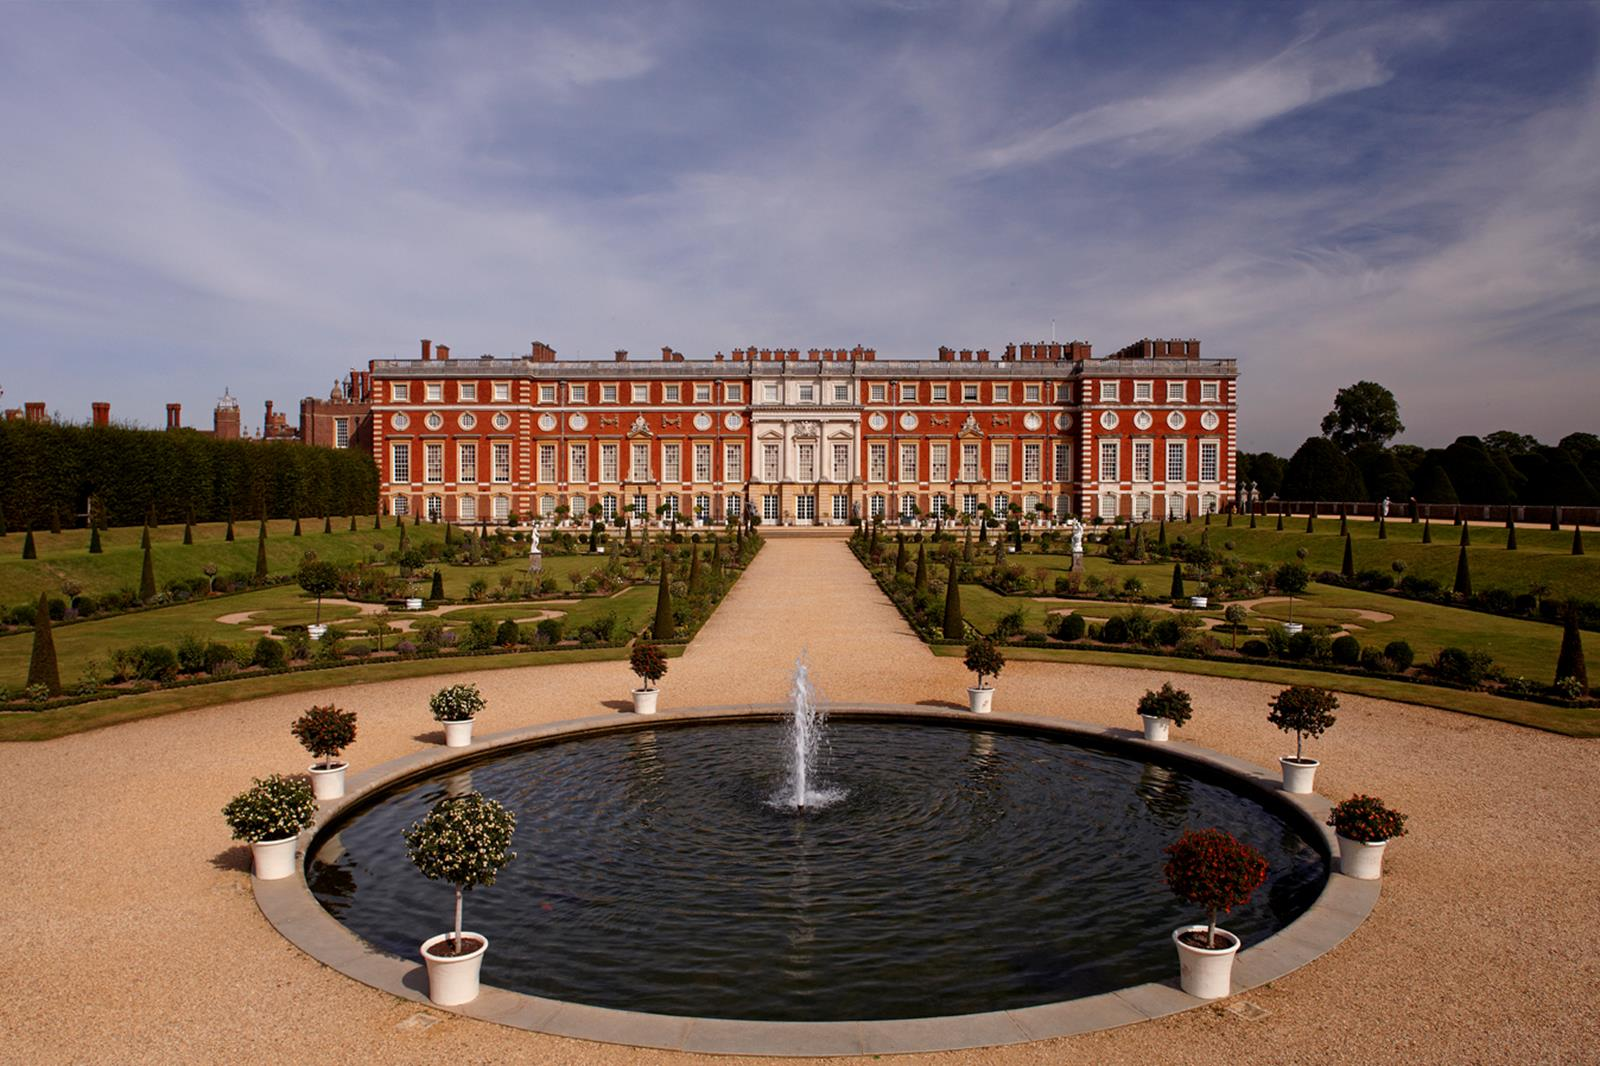 House Museums in London House Museums in London 5 Beautiful House Museums in London You Must Visit in 2018 32330 hampton court palace east molesey 04